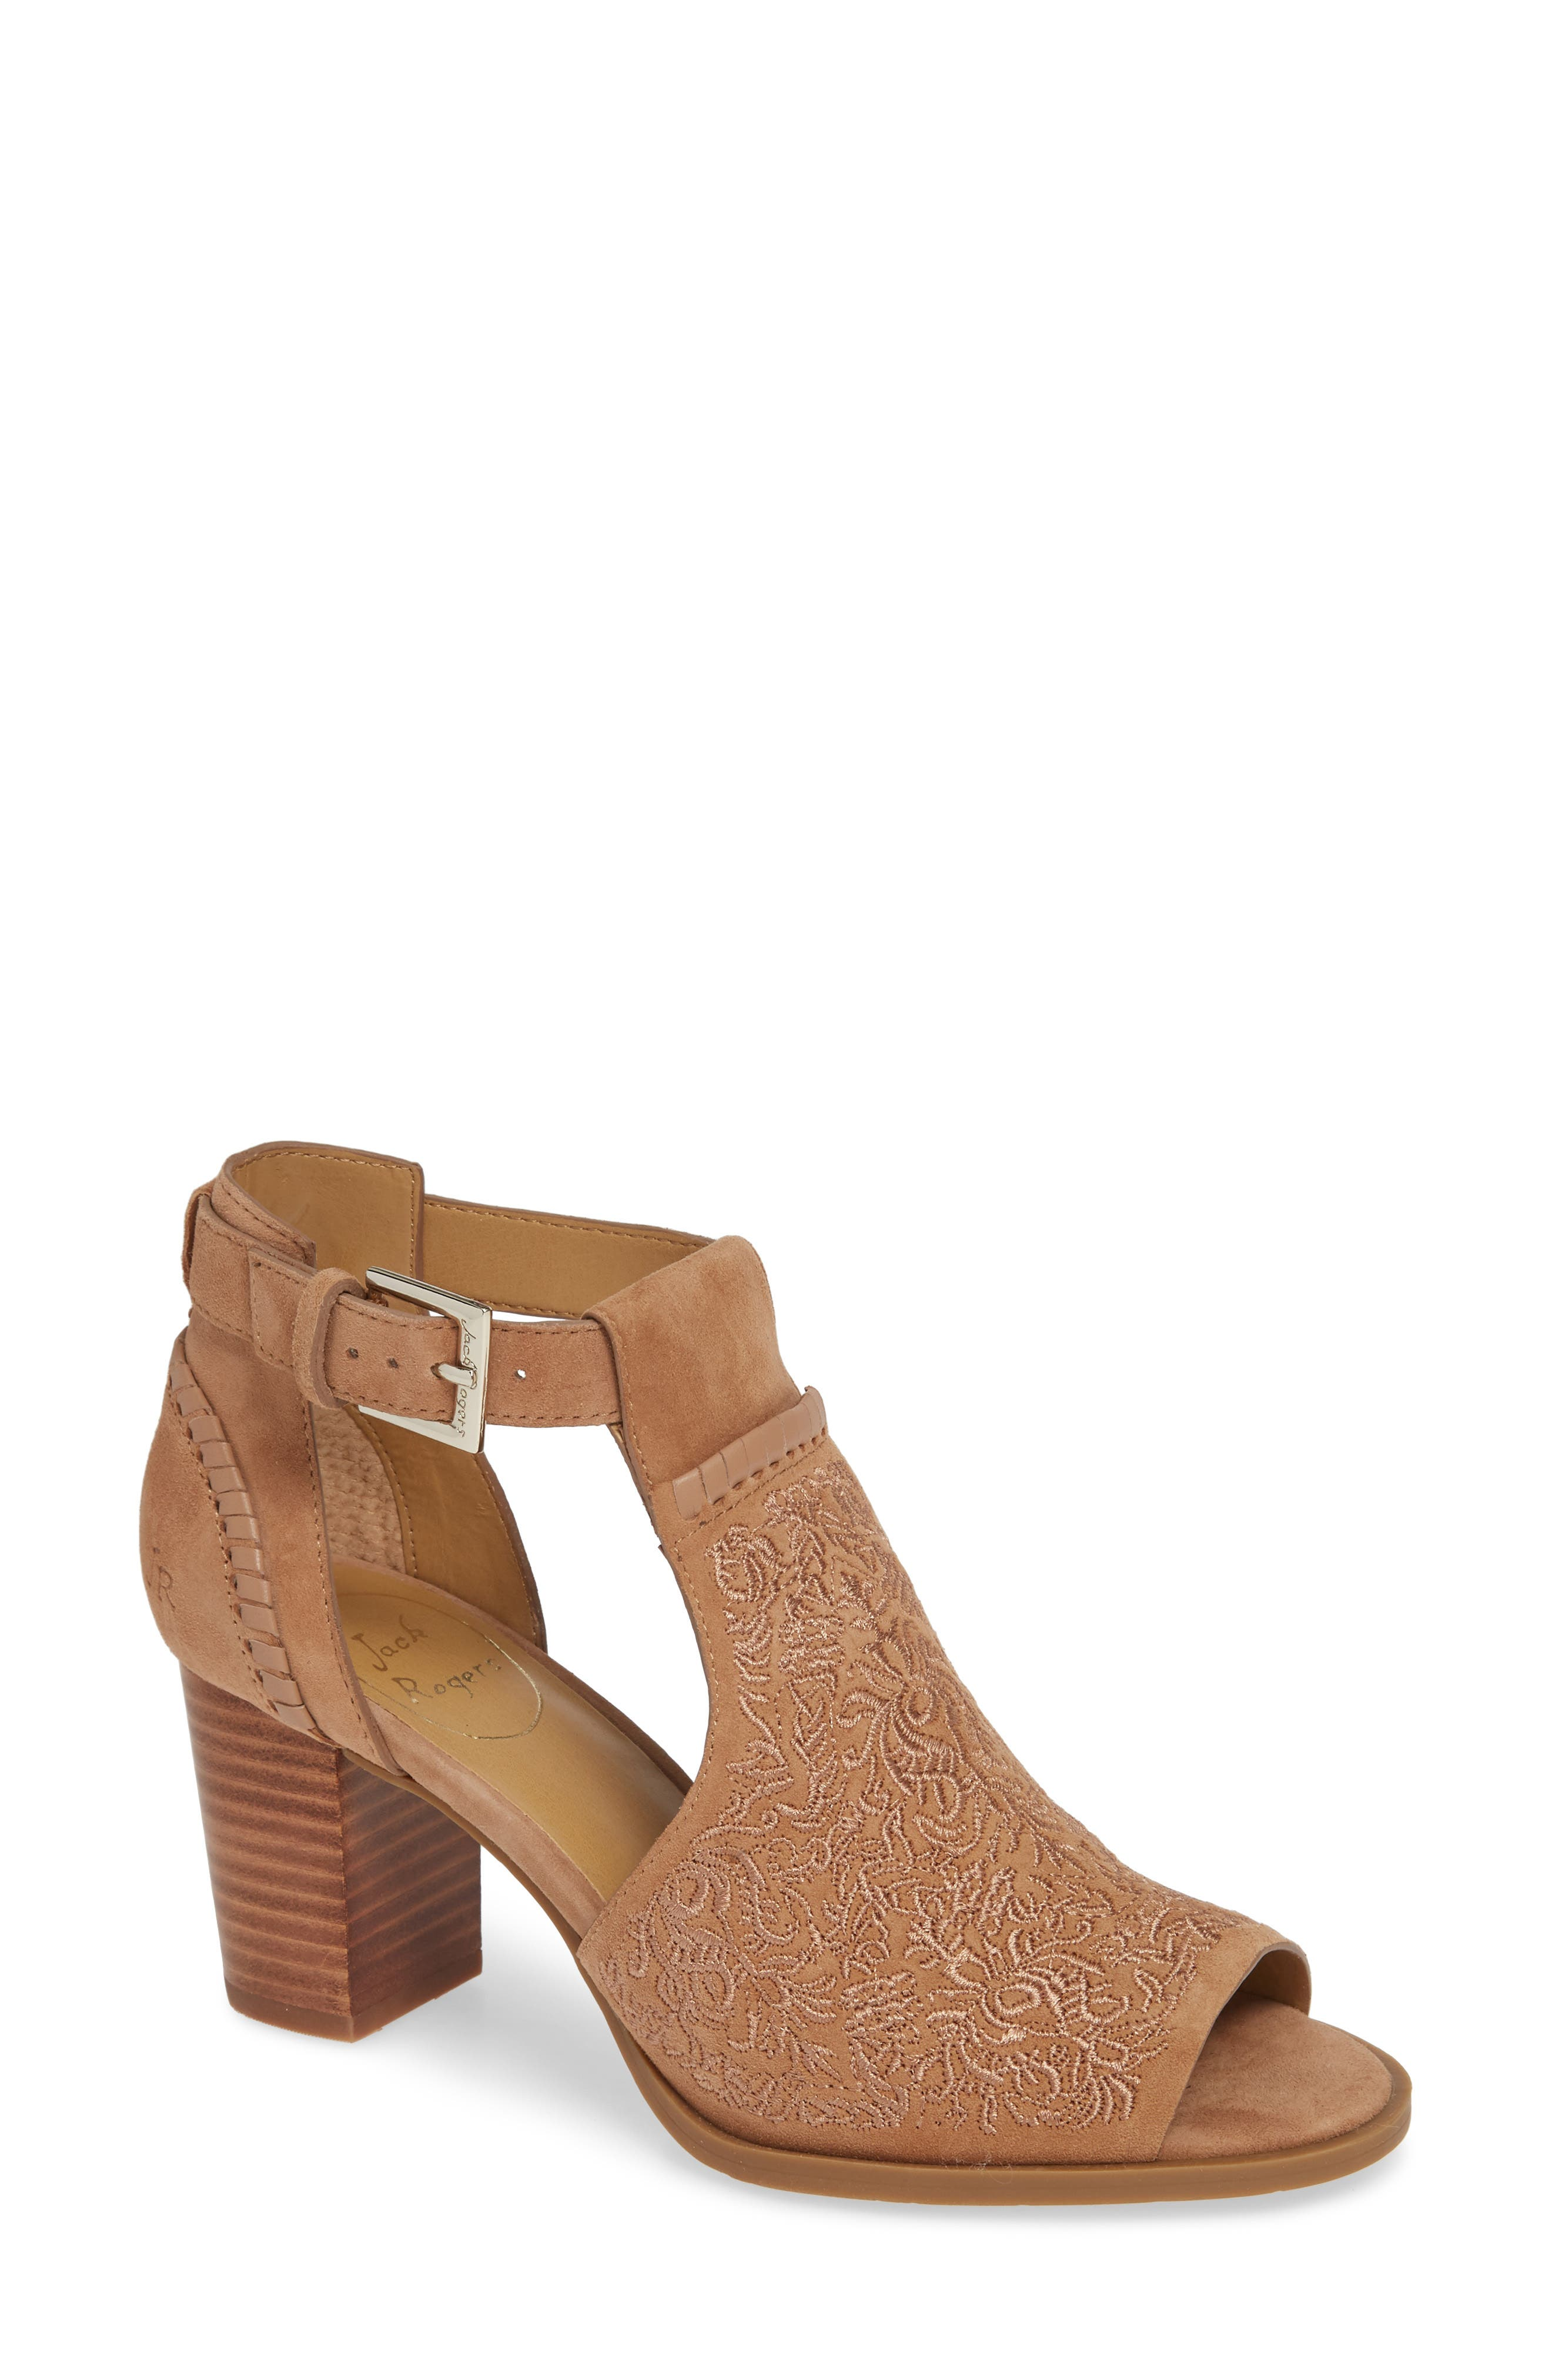 Cameron Block Heel Sandal,                             Main thumbnail 1, color,                             BROWN SUEDE